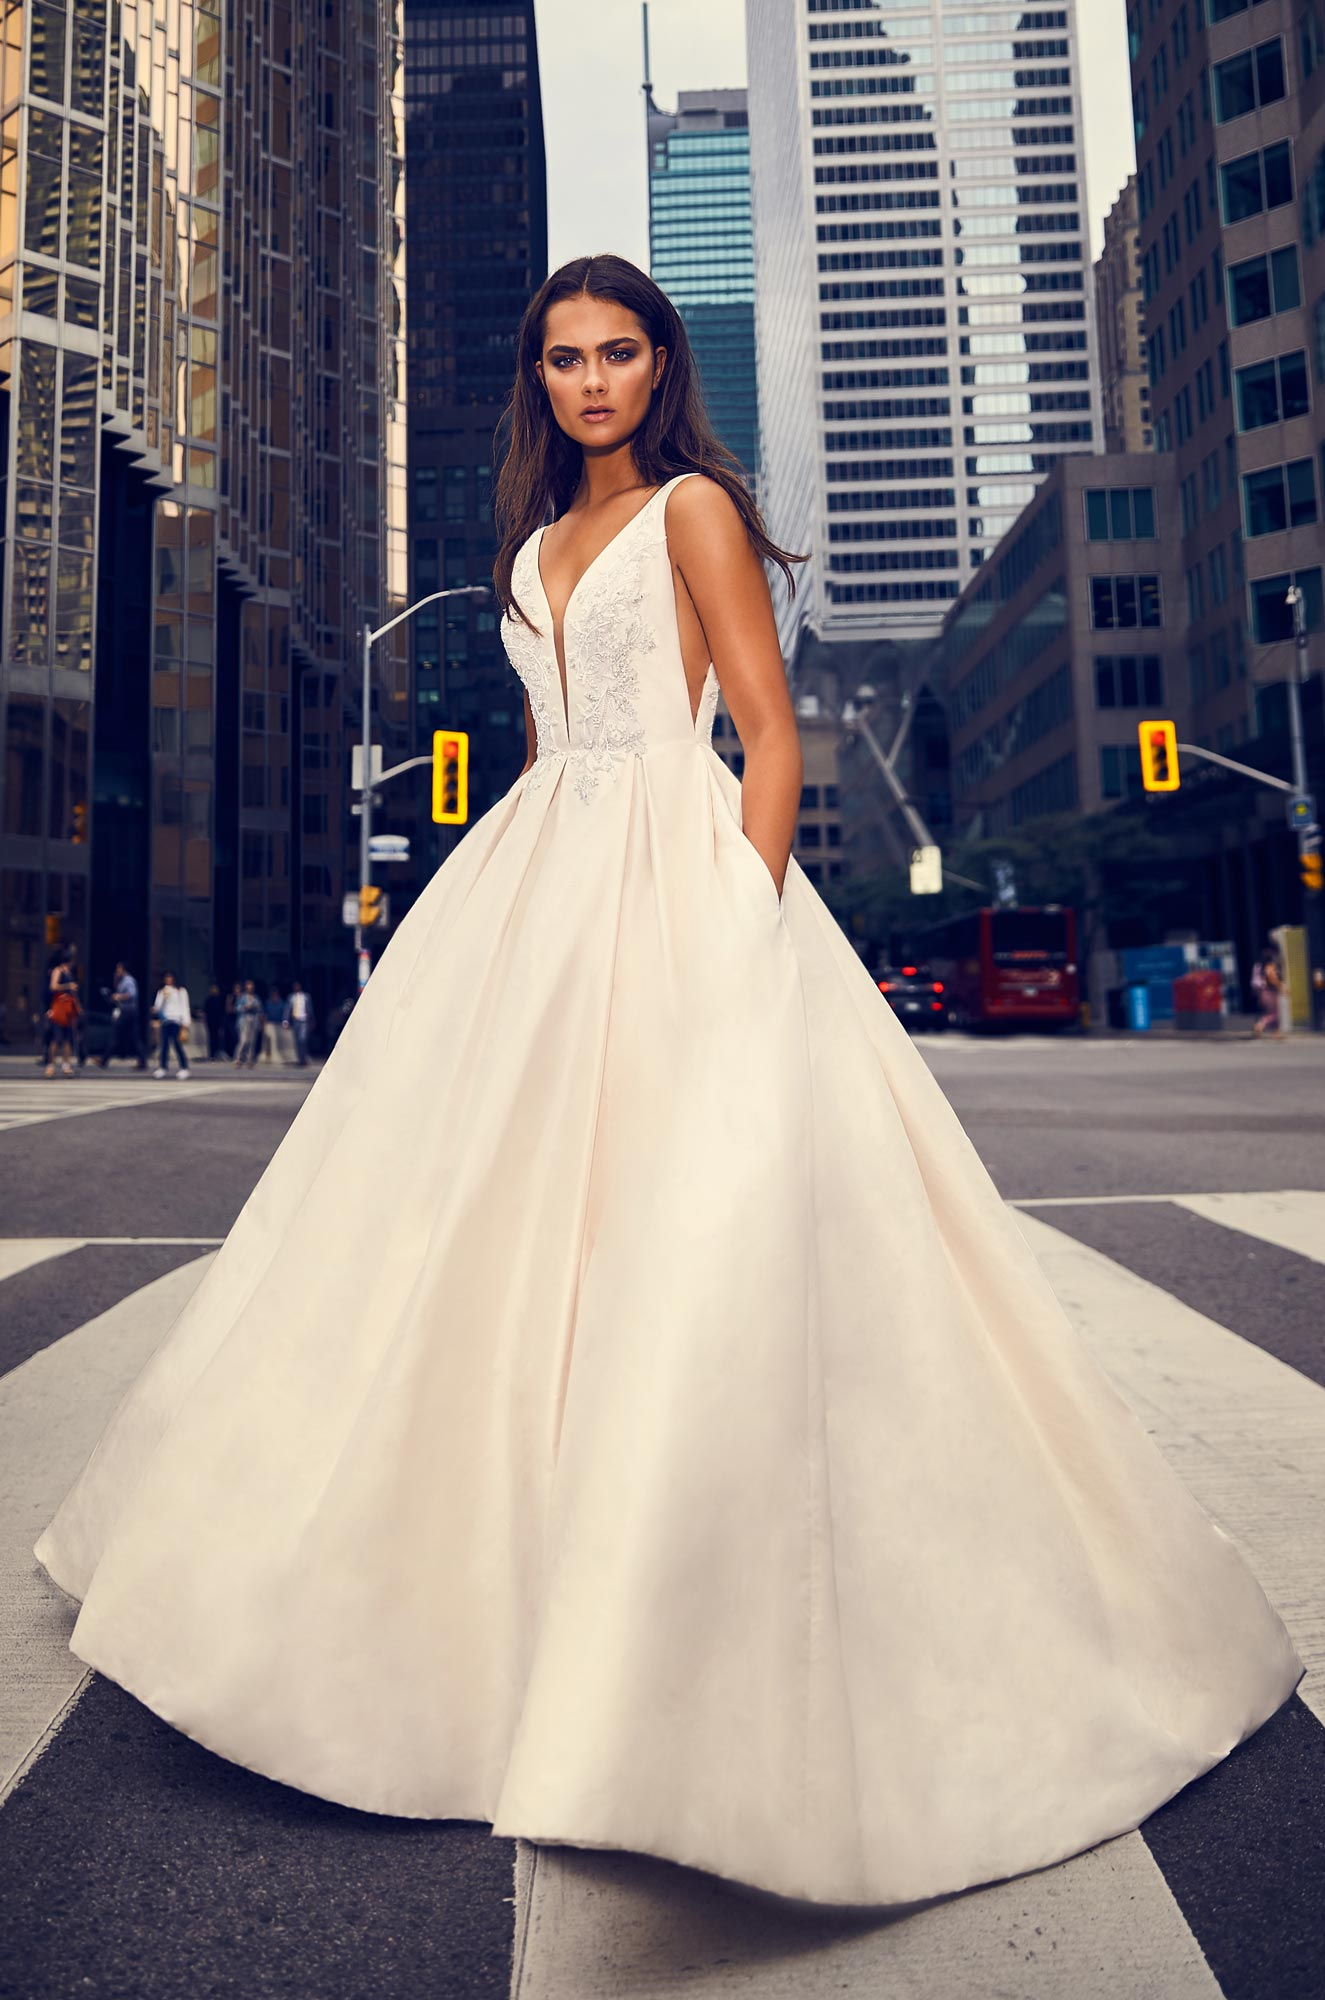 Full Silk Skirt Wedding Dress – Style #4825 | Paloma Blanca